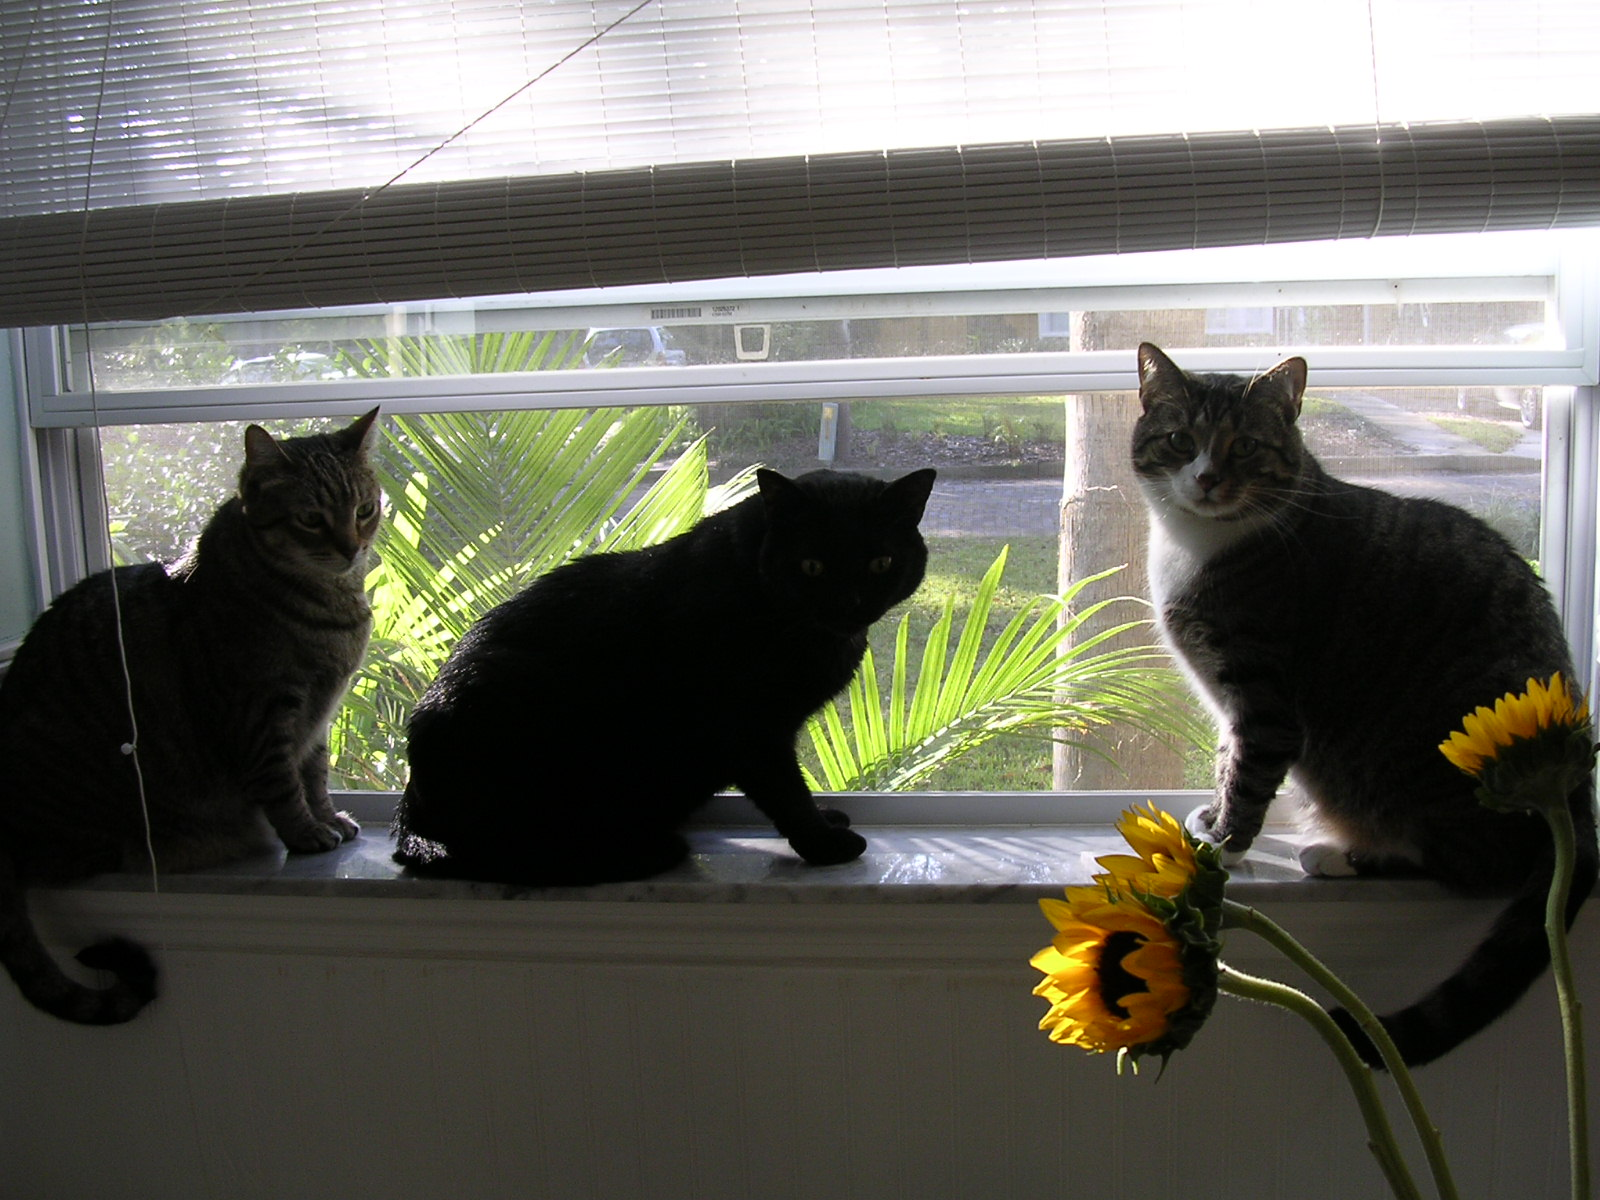 r-nichols-three-cats-picture.JPG